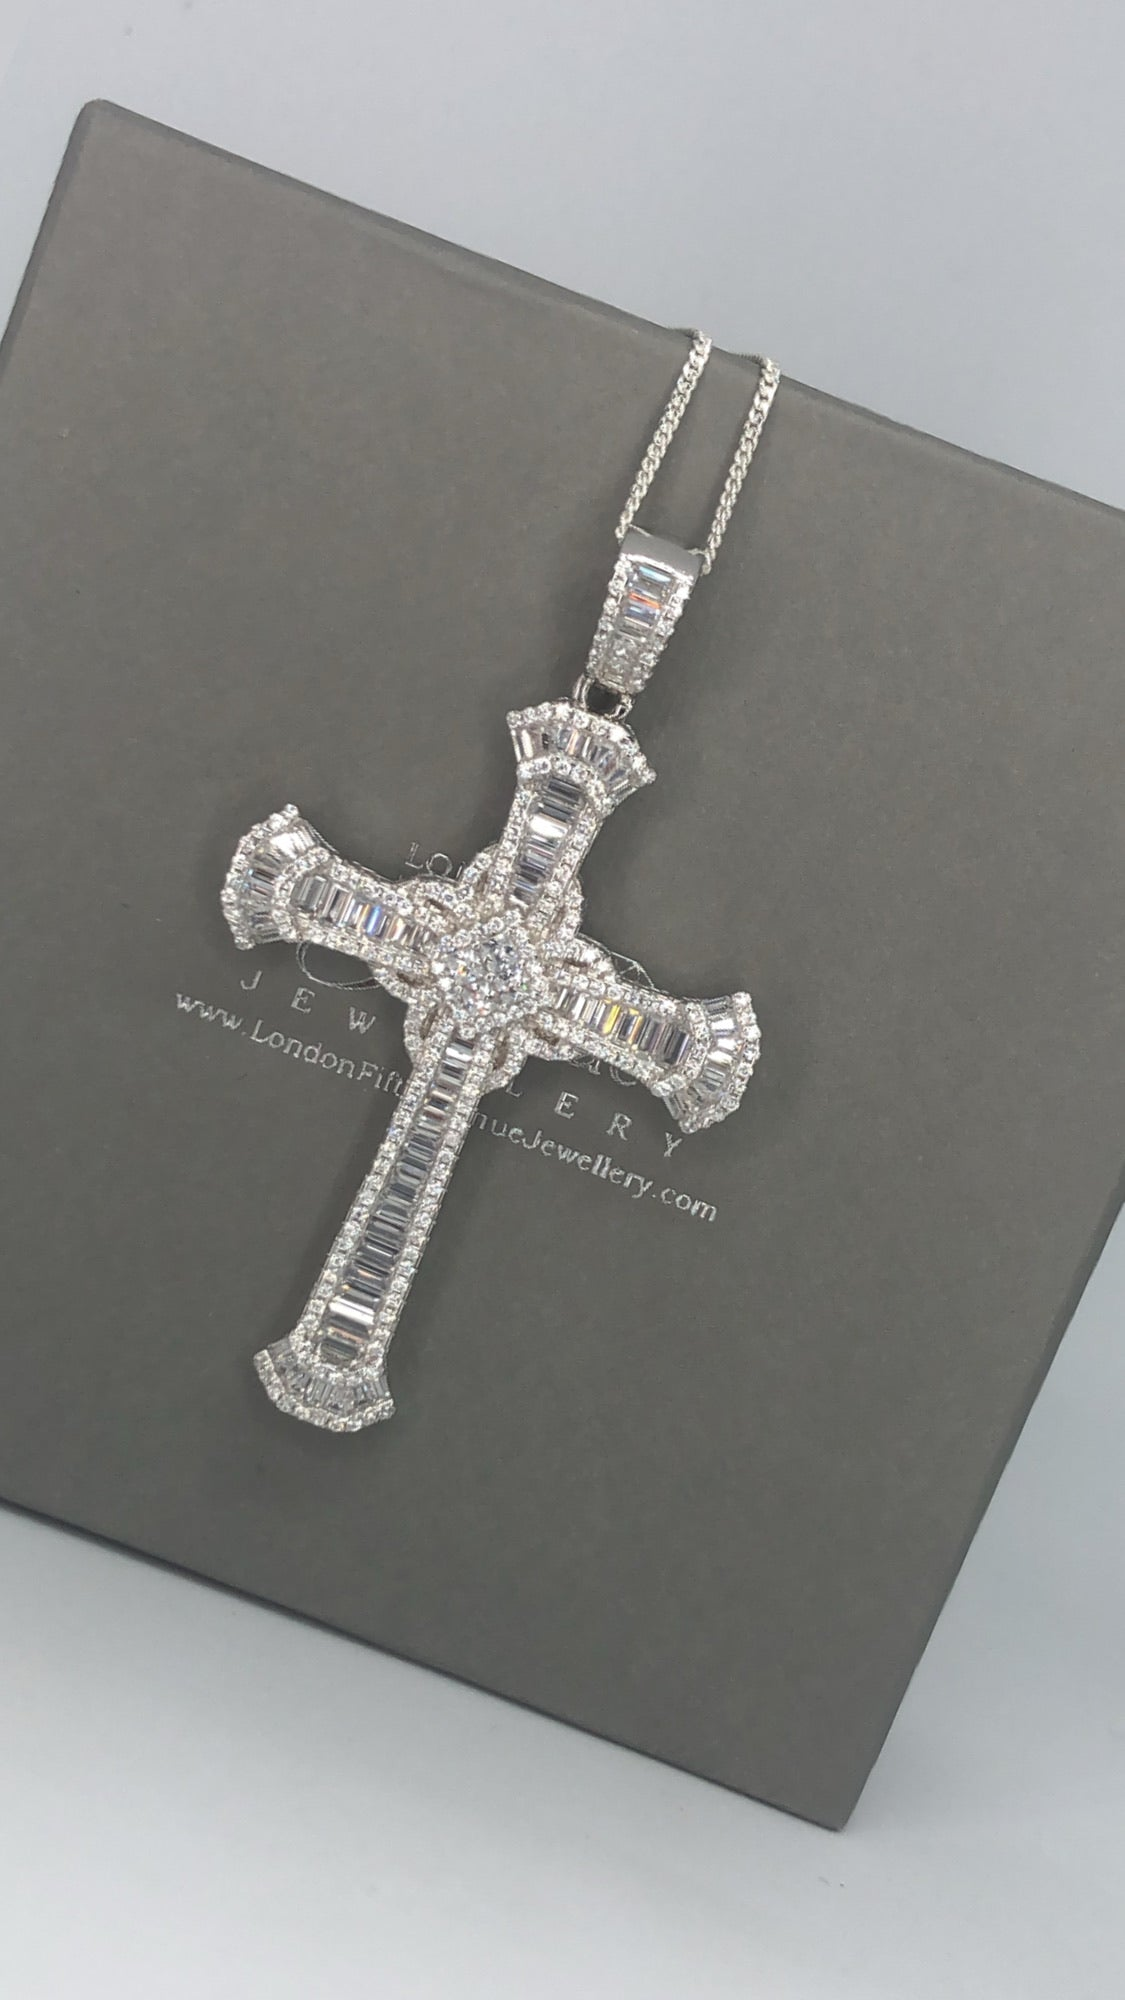 Mumbai cross pendant